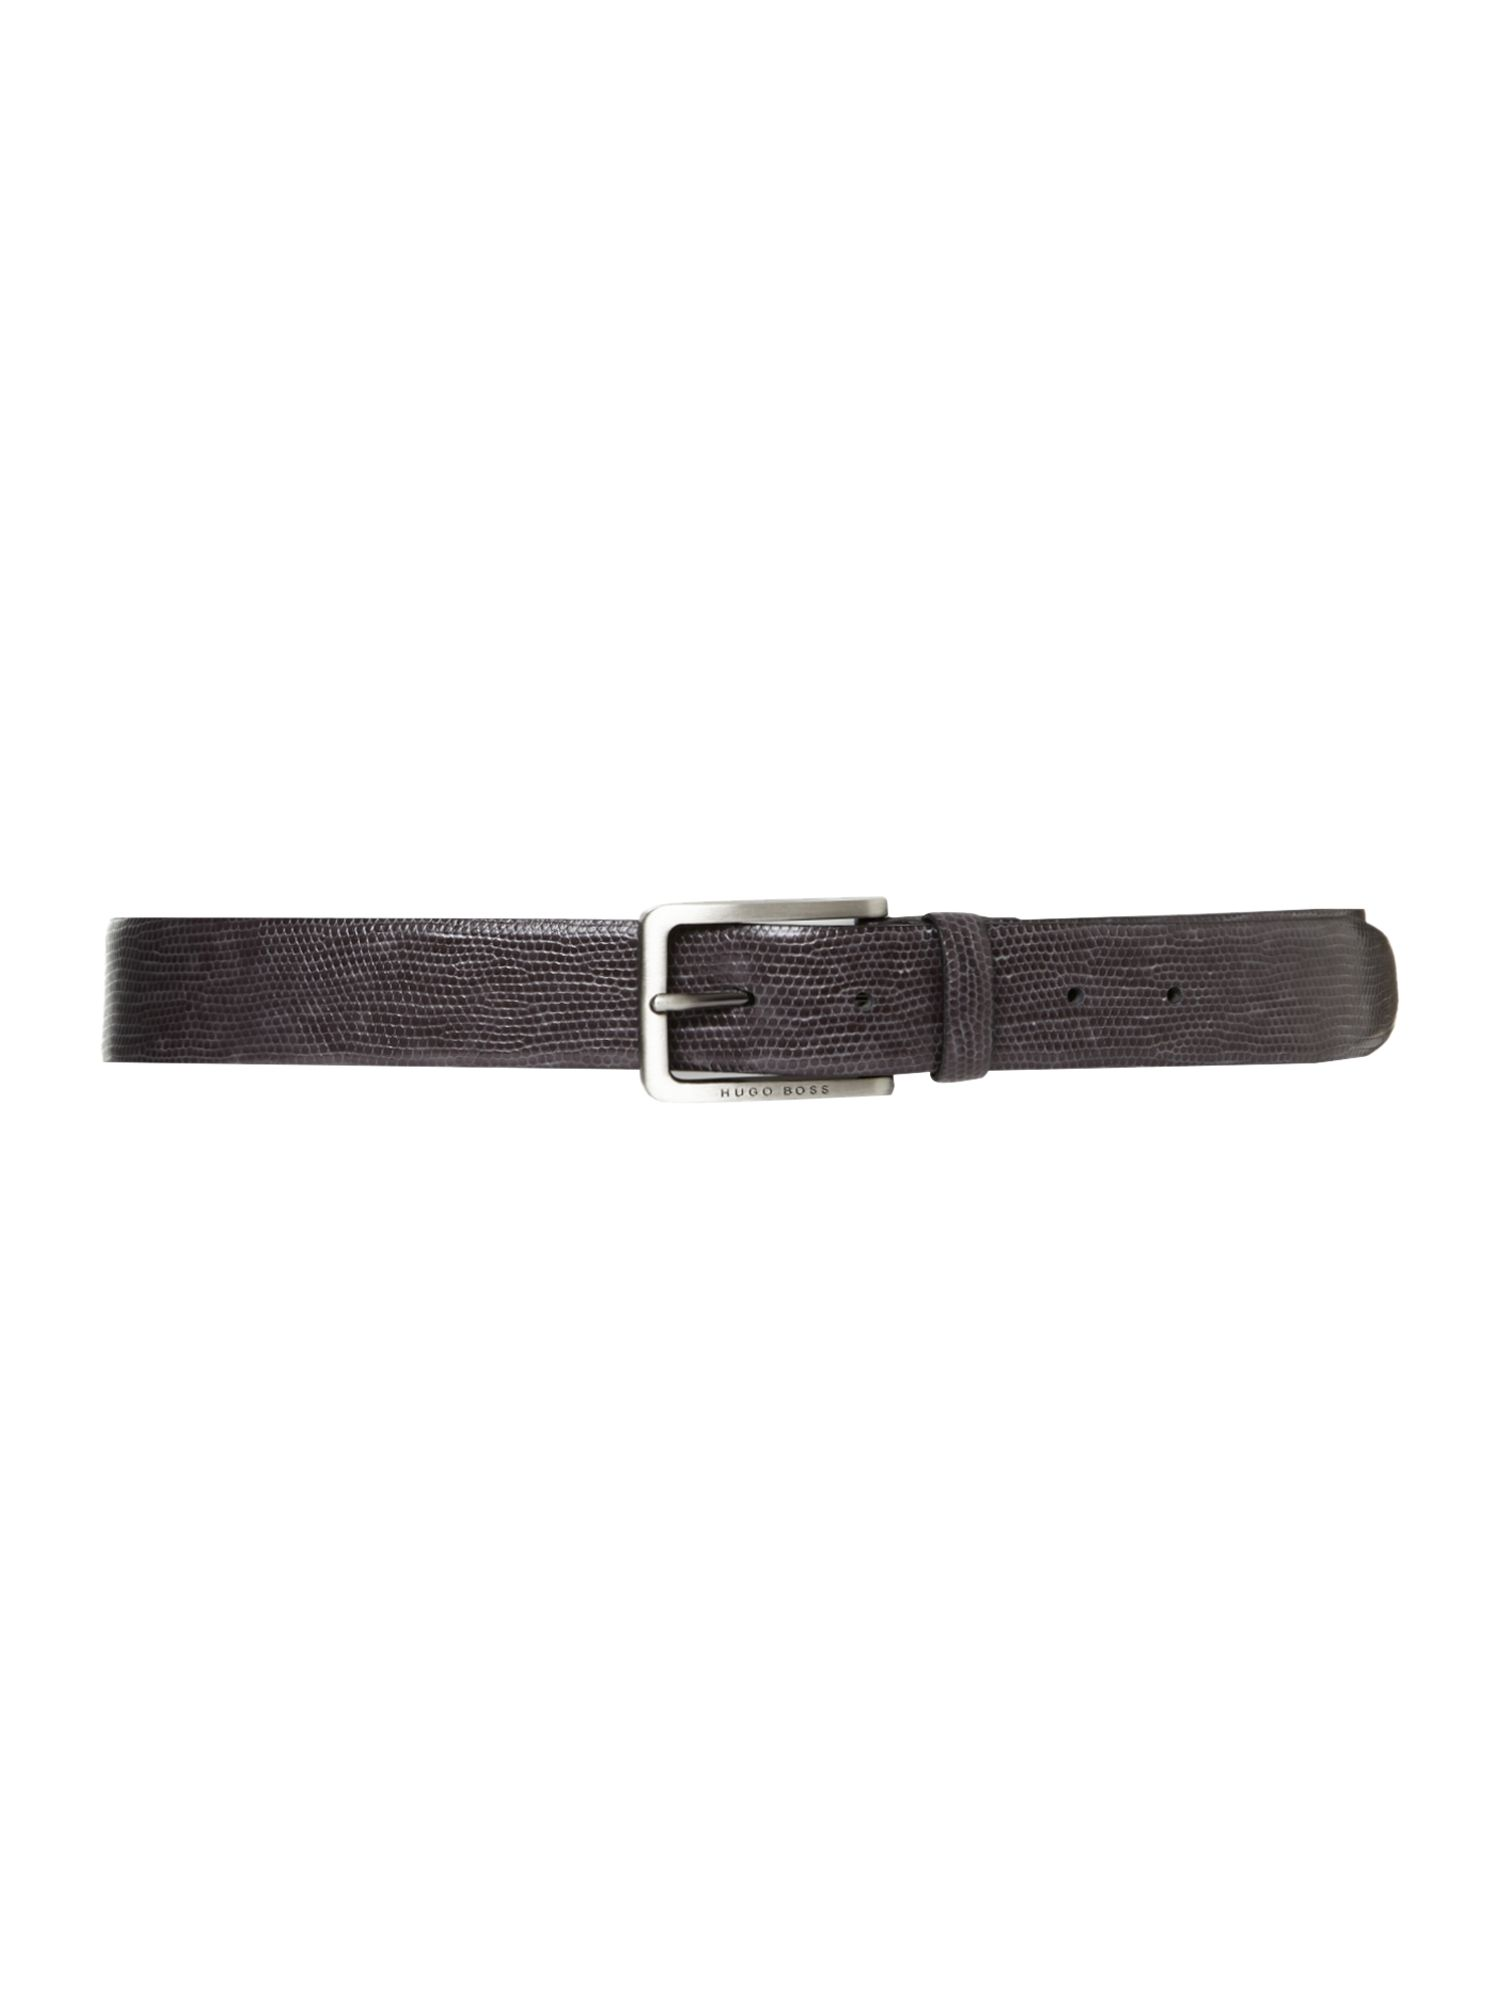 Petros textured belt